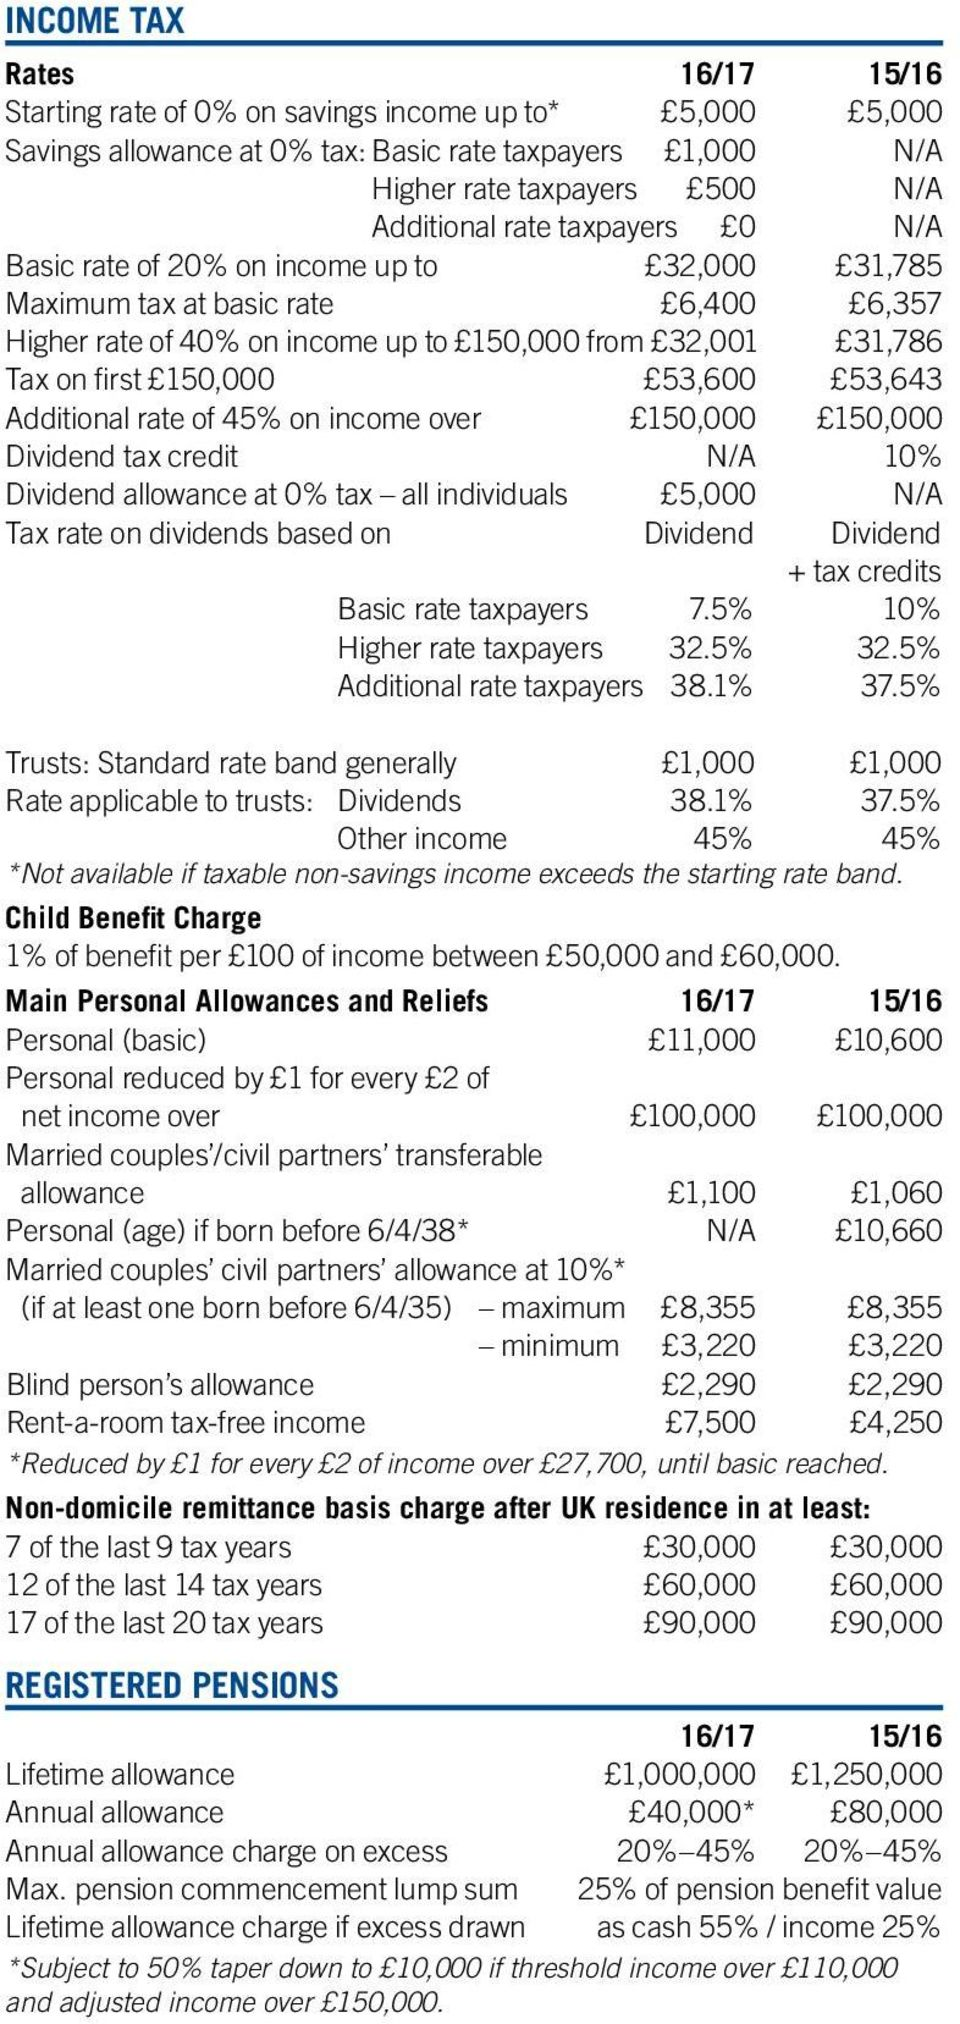 Additional rate of 45% on income over 150,000 150,000 Dividend tax credit N/A 10% Dividend allowance at 0% tax all individuals 5,000 N/A Tax rate on dividends based on Dividend Dividend + tax credits